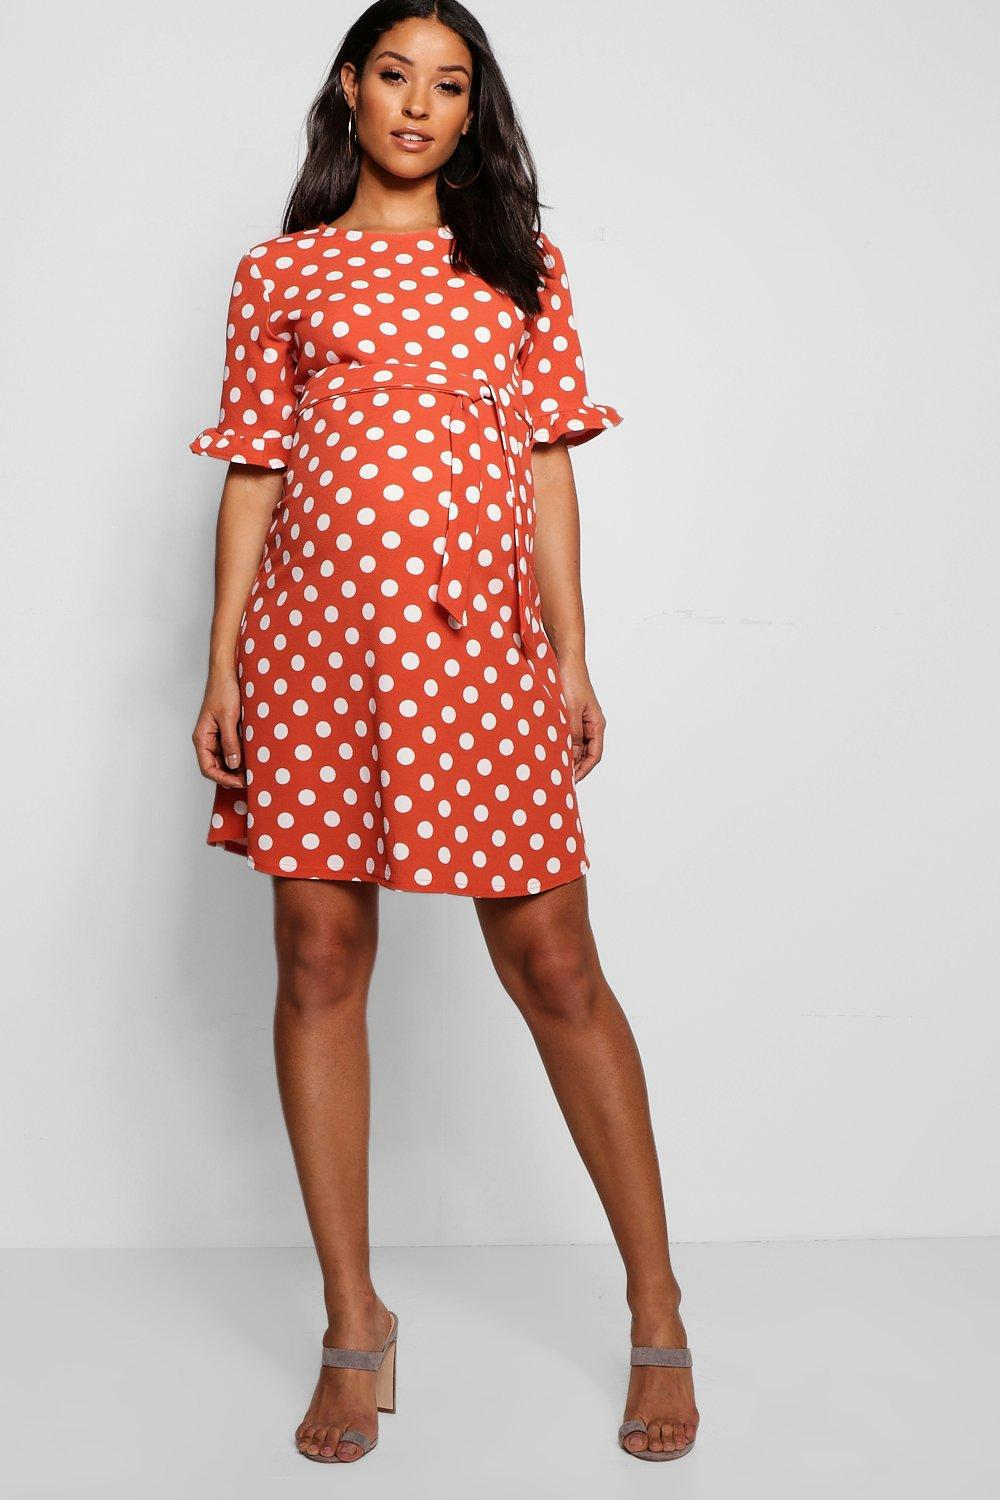 15b2ee00e919 Boohoo Maternity Spot Print Ruffle Smock Dress in Red - Lyst